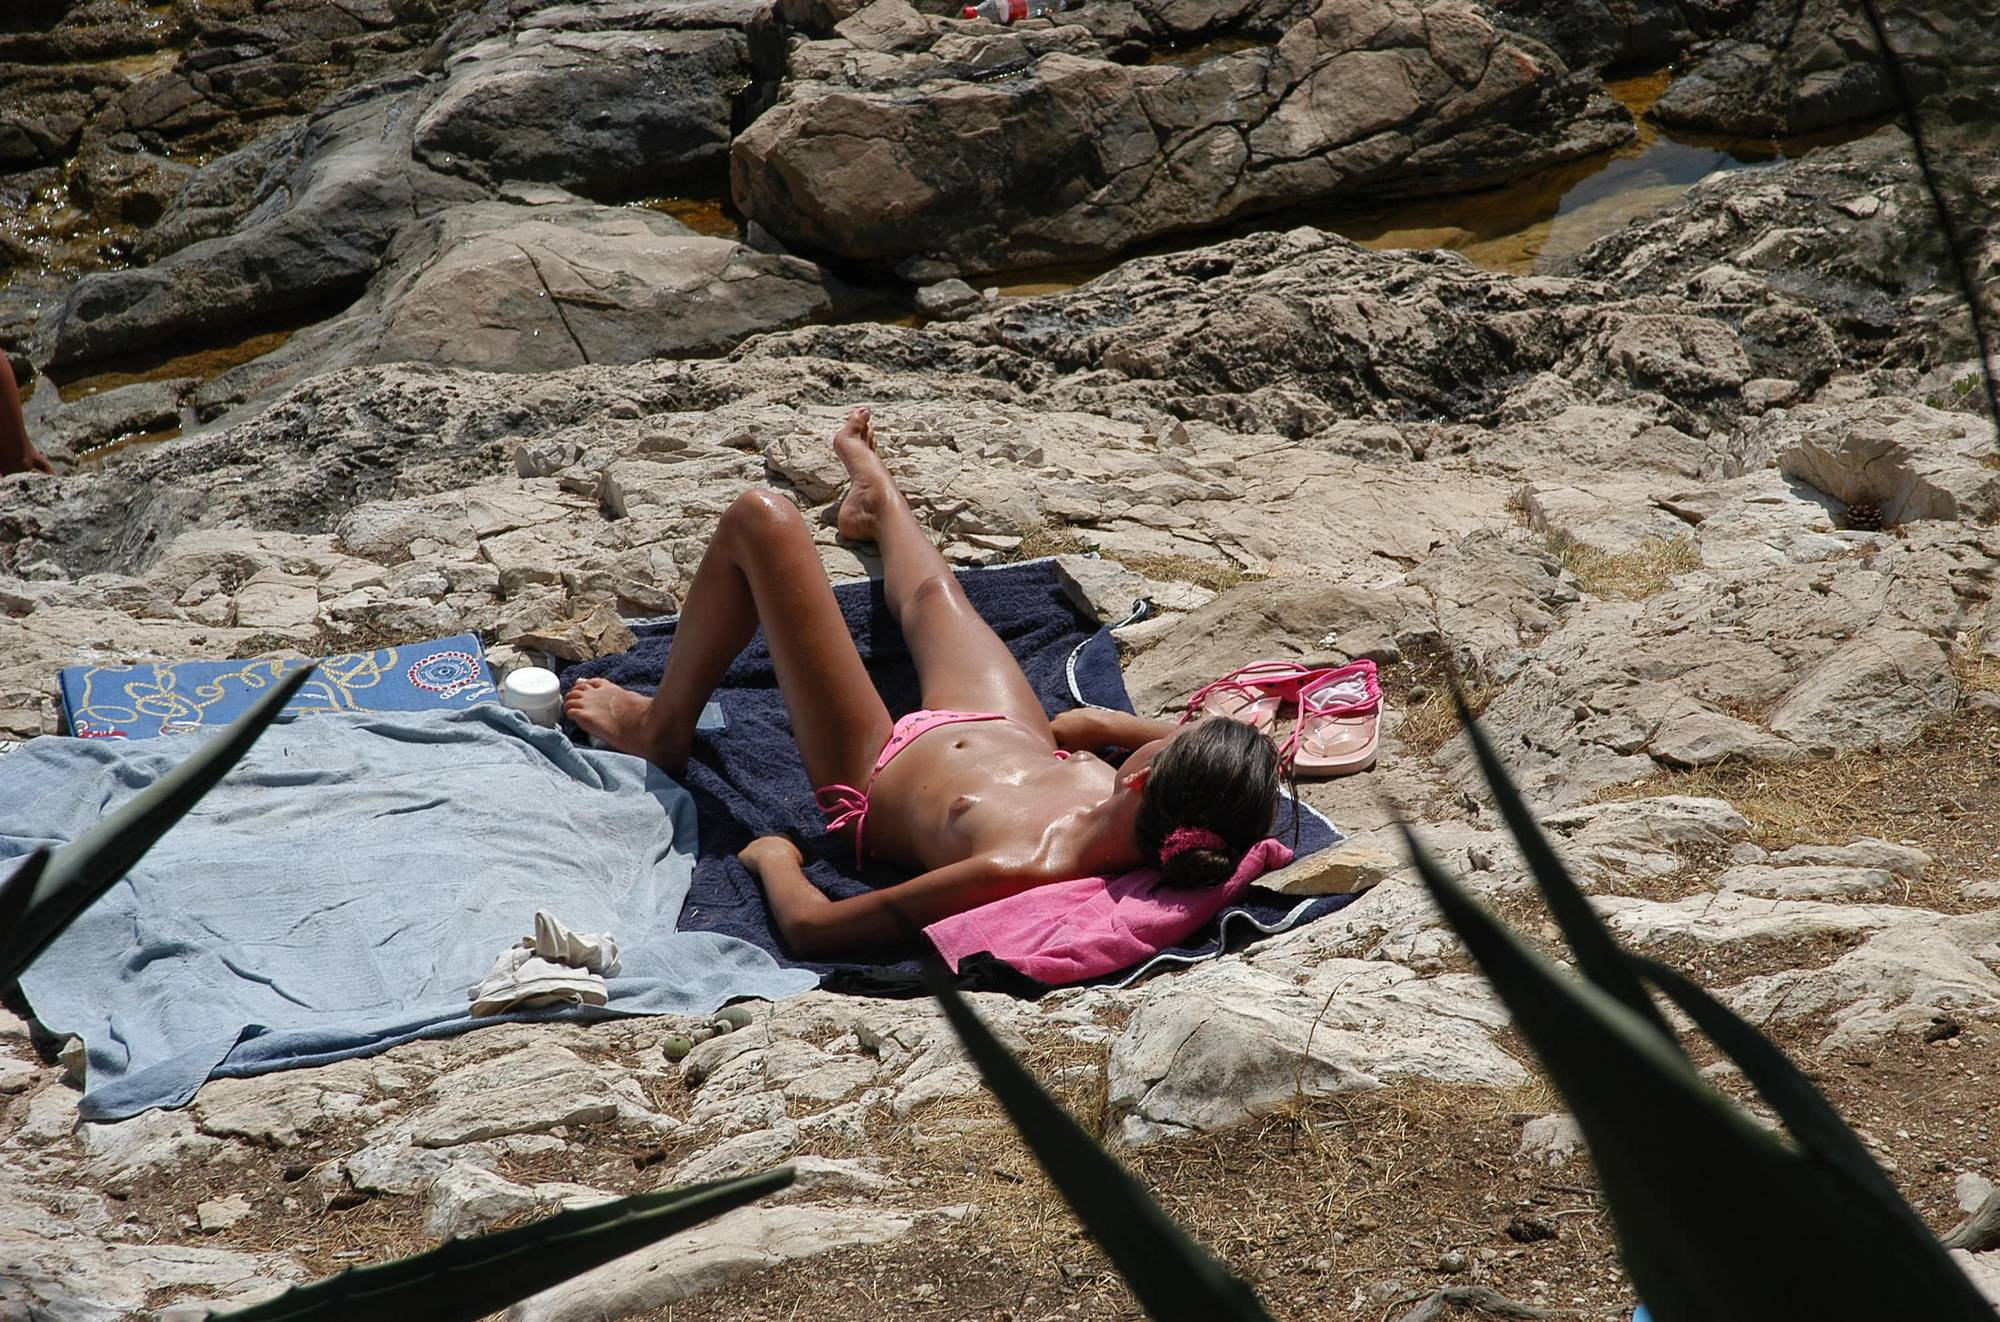 Nudist Pics Croatian Hvar Beach Trip - 2